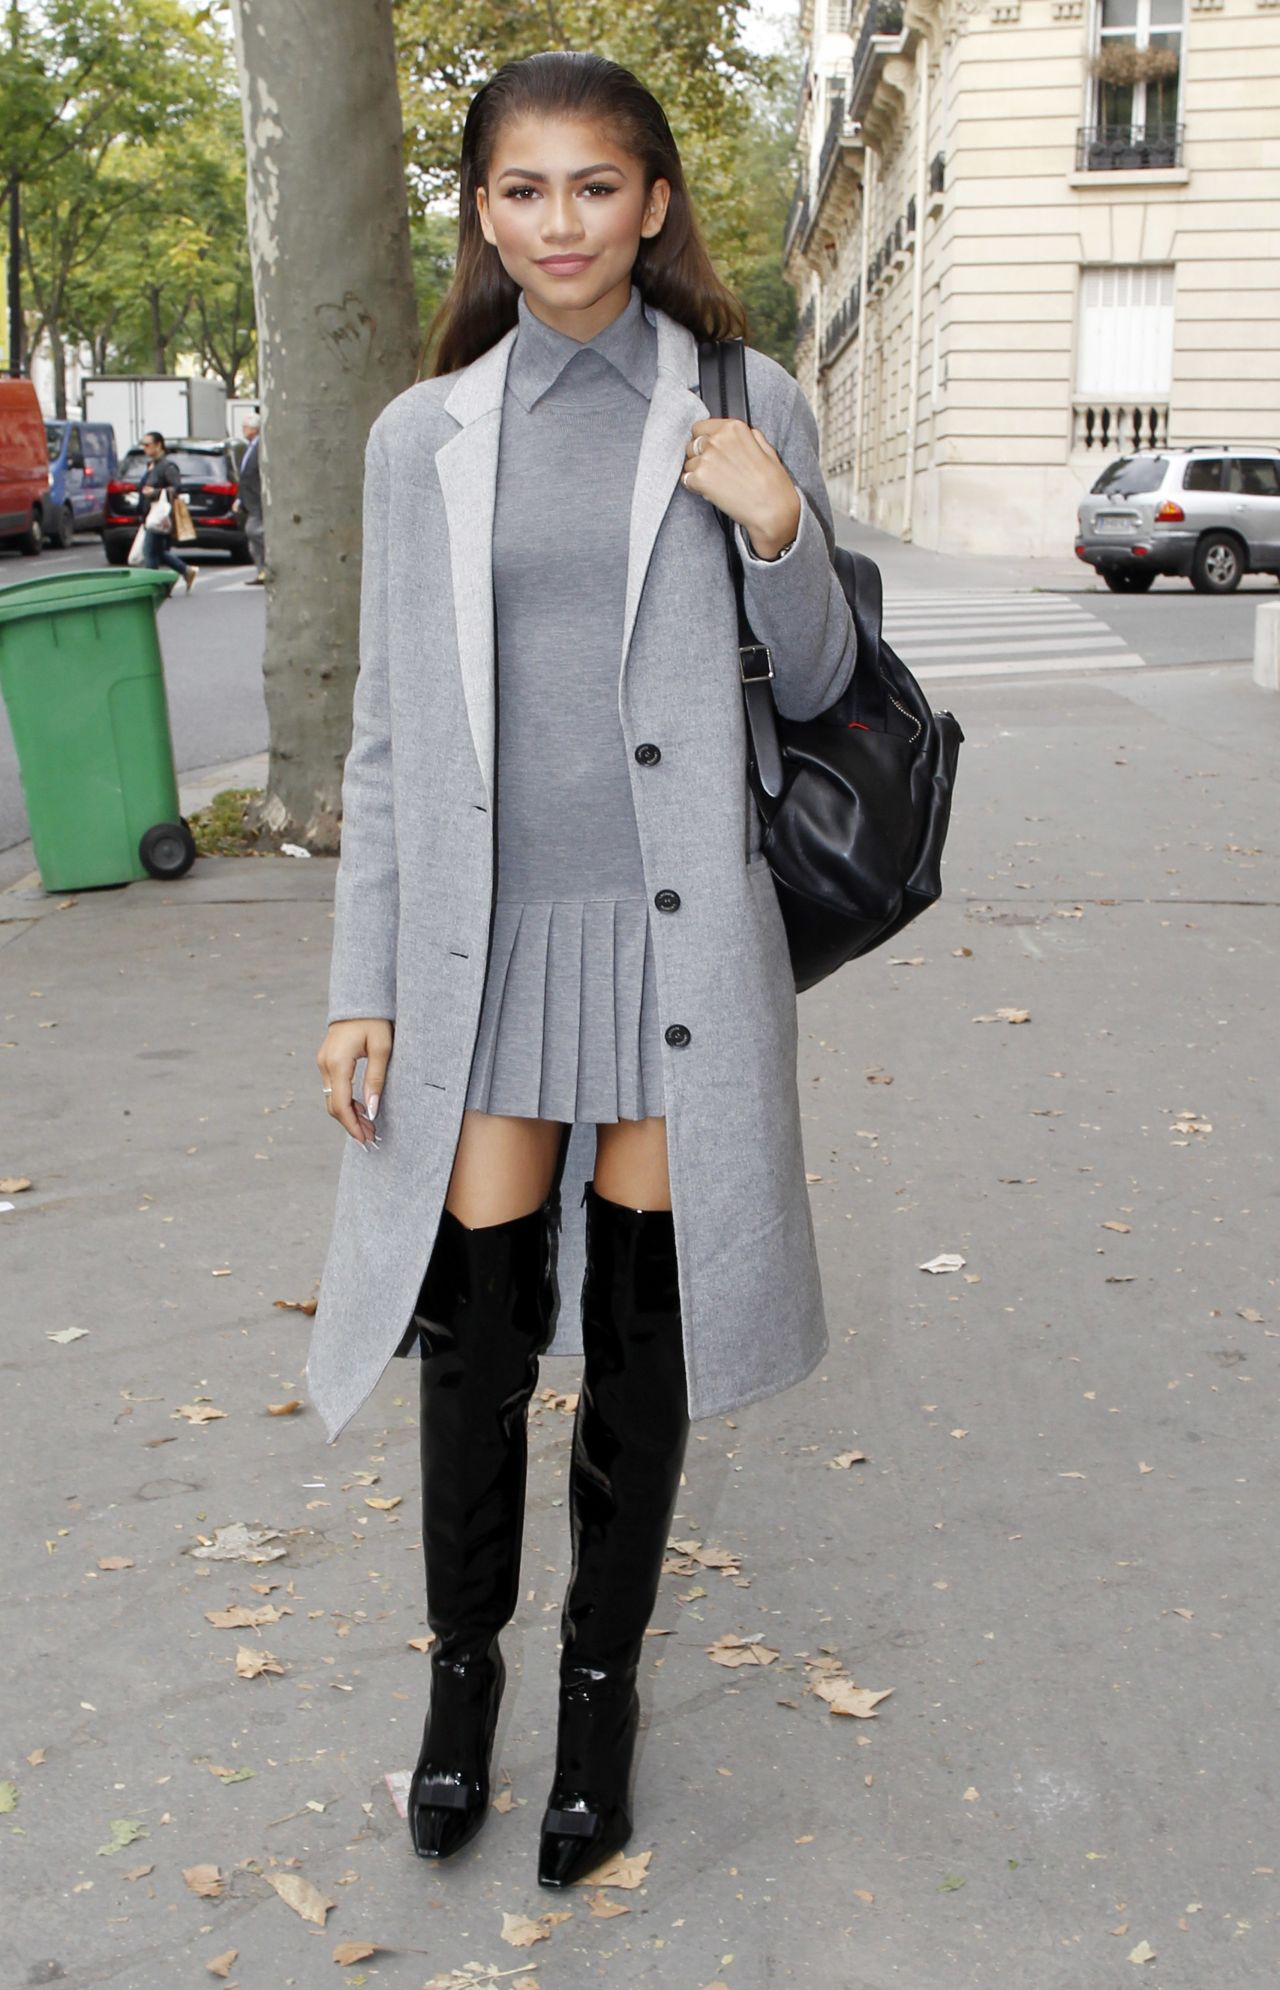 zendaya street fashion out in paris october 2015